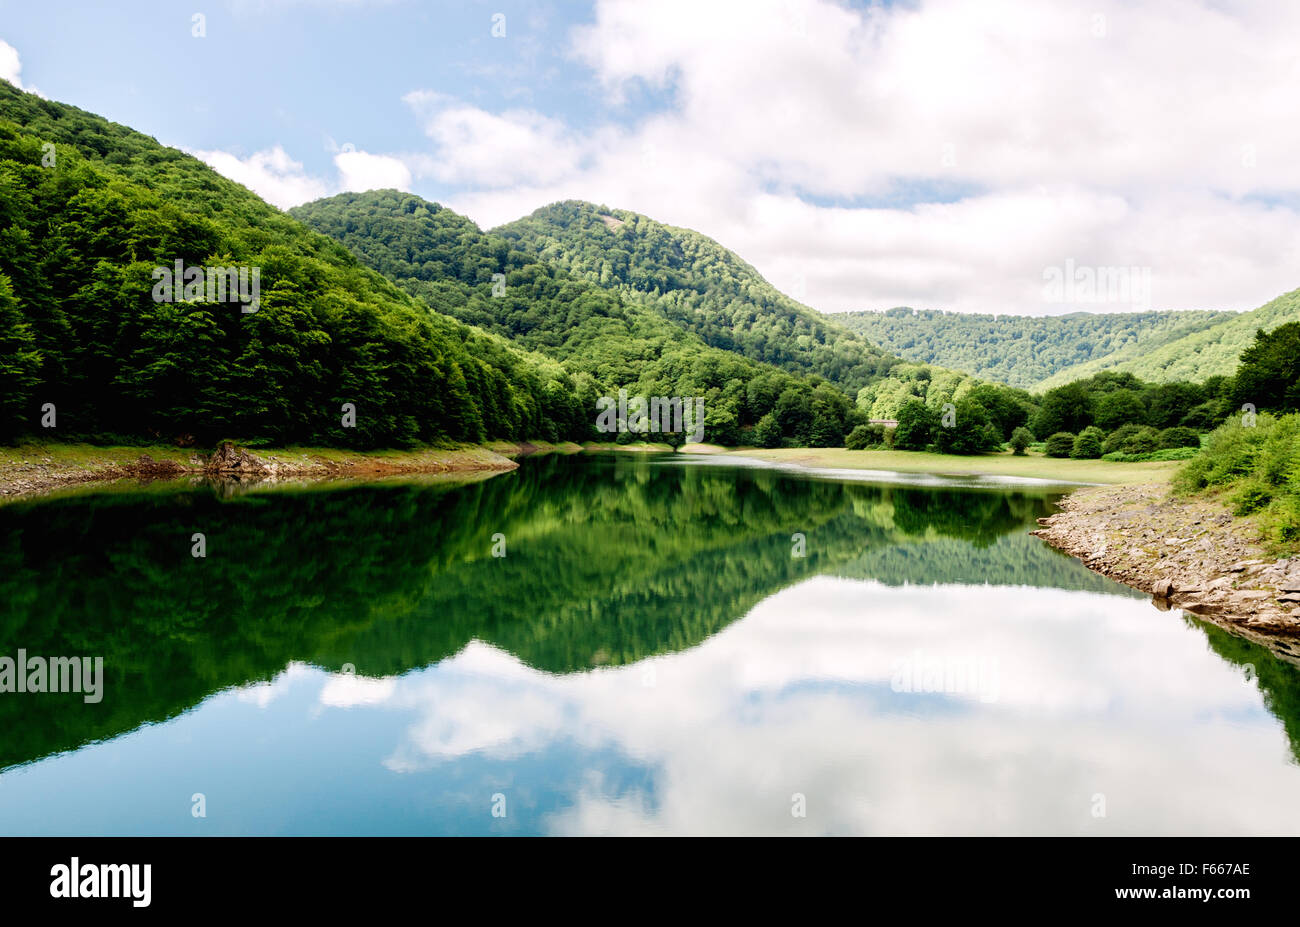 In northwest Navarre, between the towns of Urrotz and Beintza-Labaien two dams built in 1920. In the middle of the - Stock Image